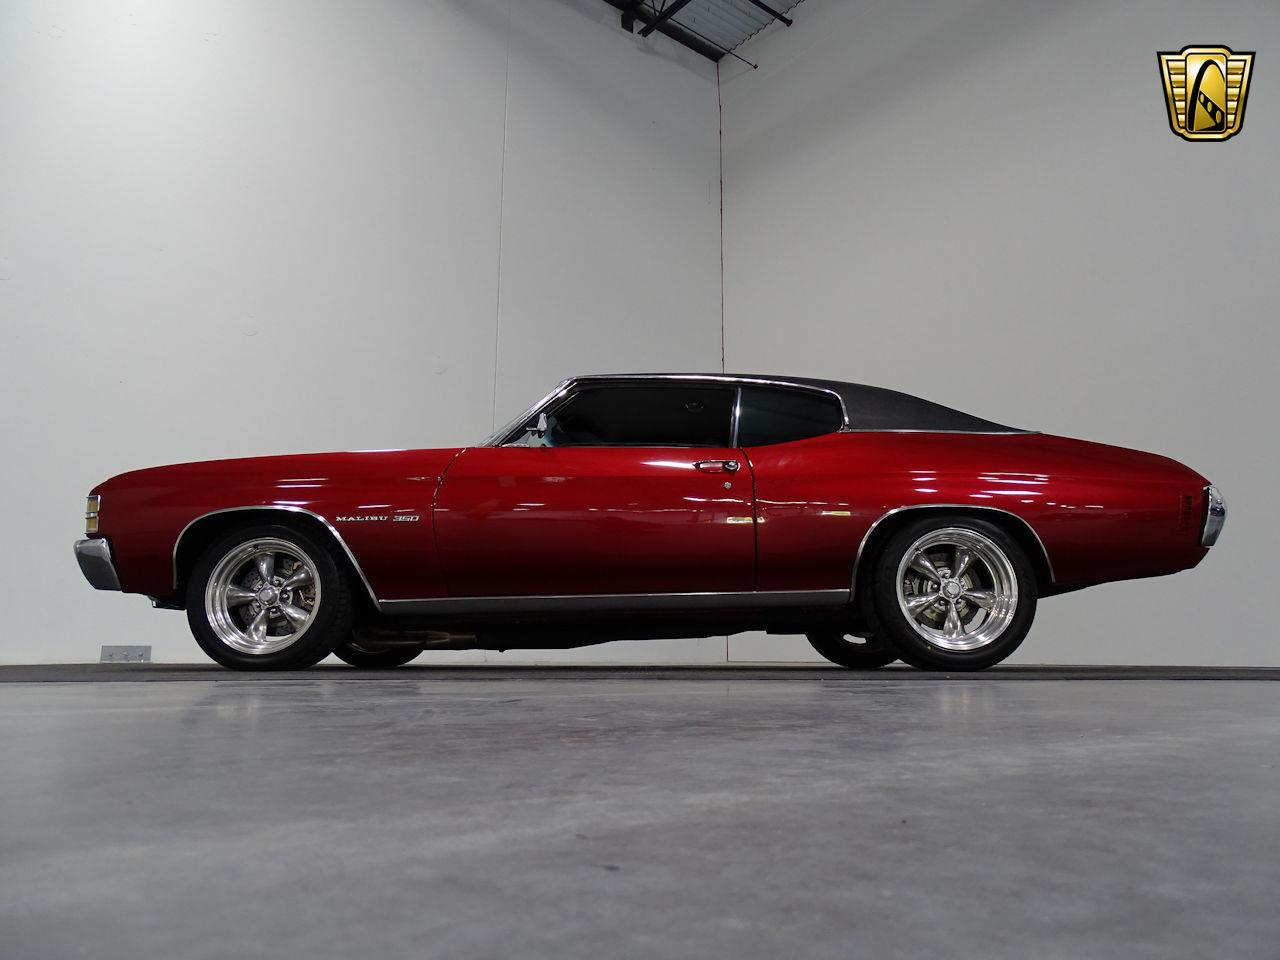 Large Picture of Classic '71 Chevrolet Chevelle located in Texas - $61,000.00 Offered by Gateway Classic Cars - Houston - LFRJ